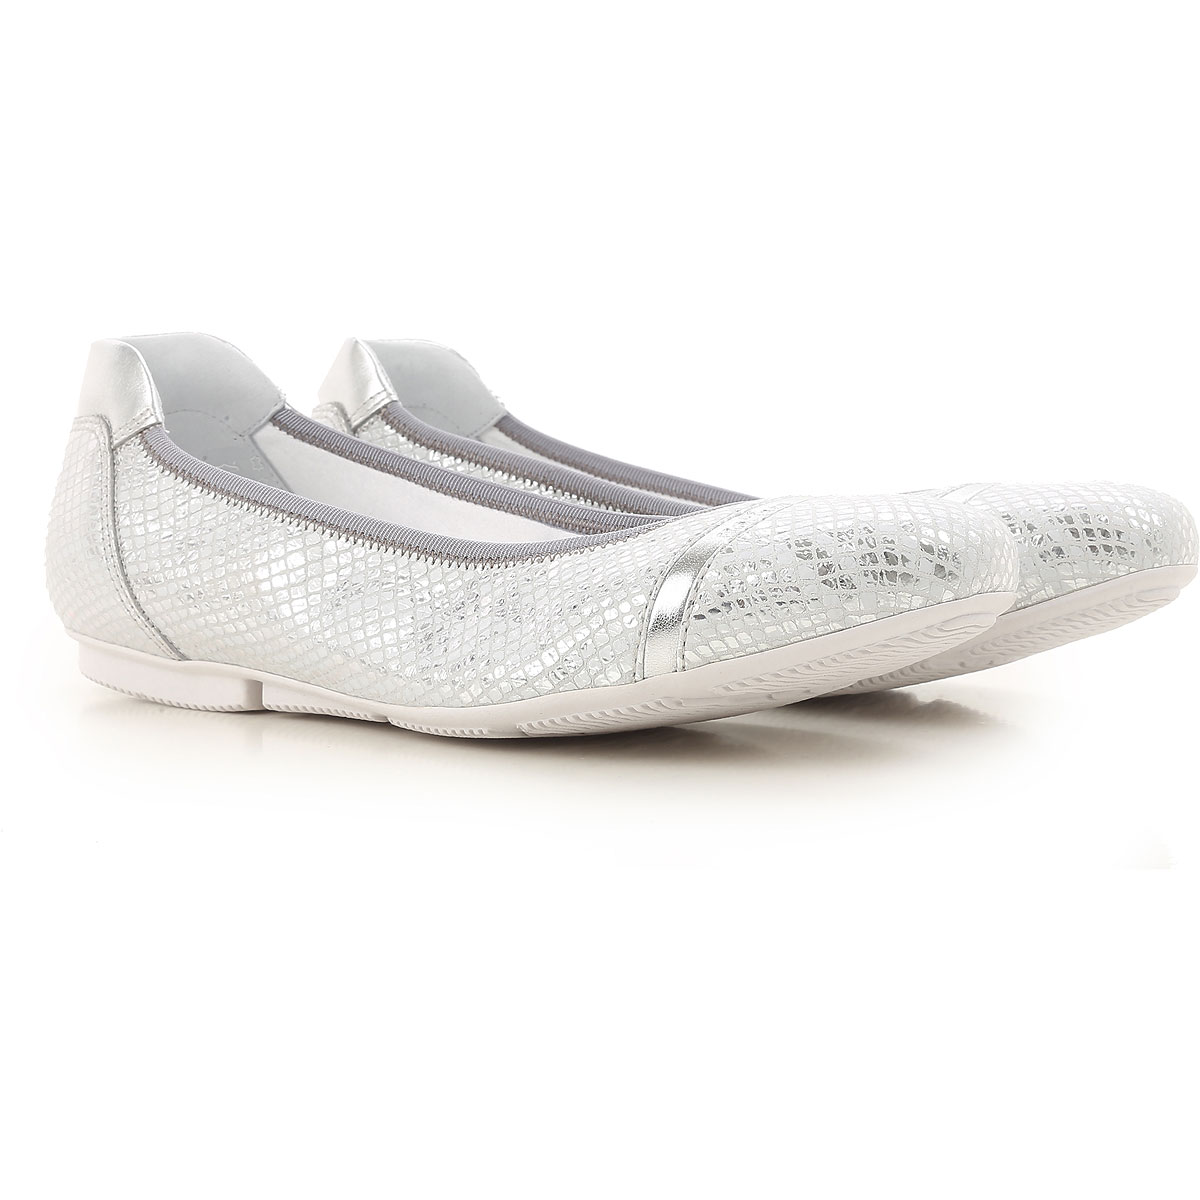 Image of Hogan Ballet Flats Ballerina Shoes for Women On Sale, Silver, Leather, 2017, 5 6